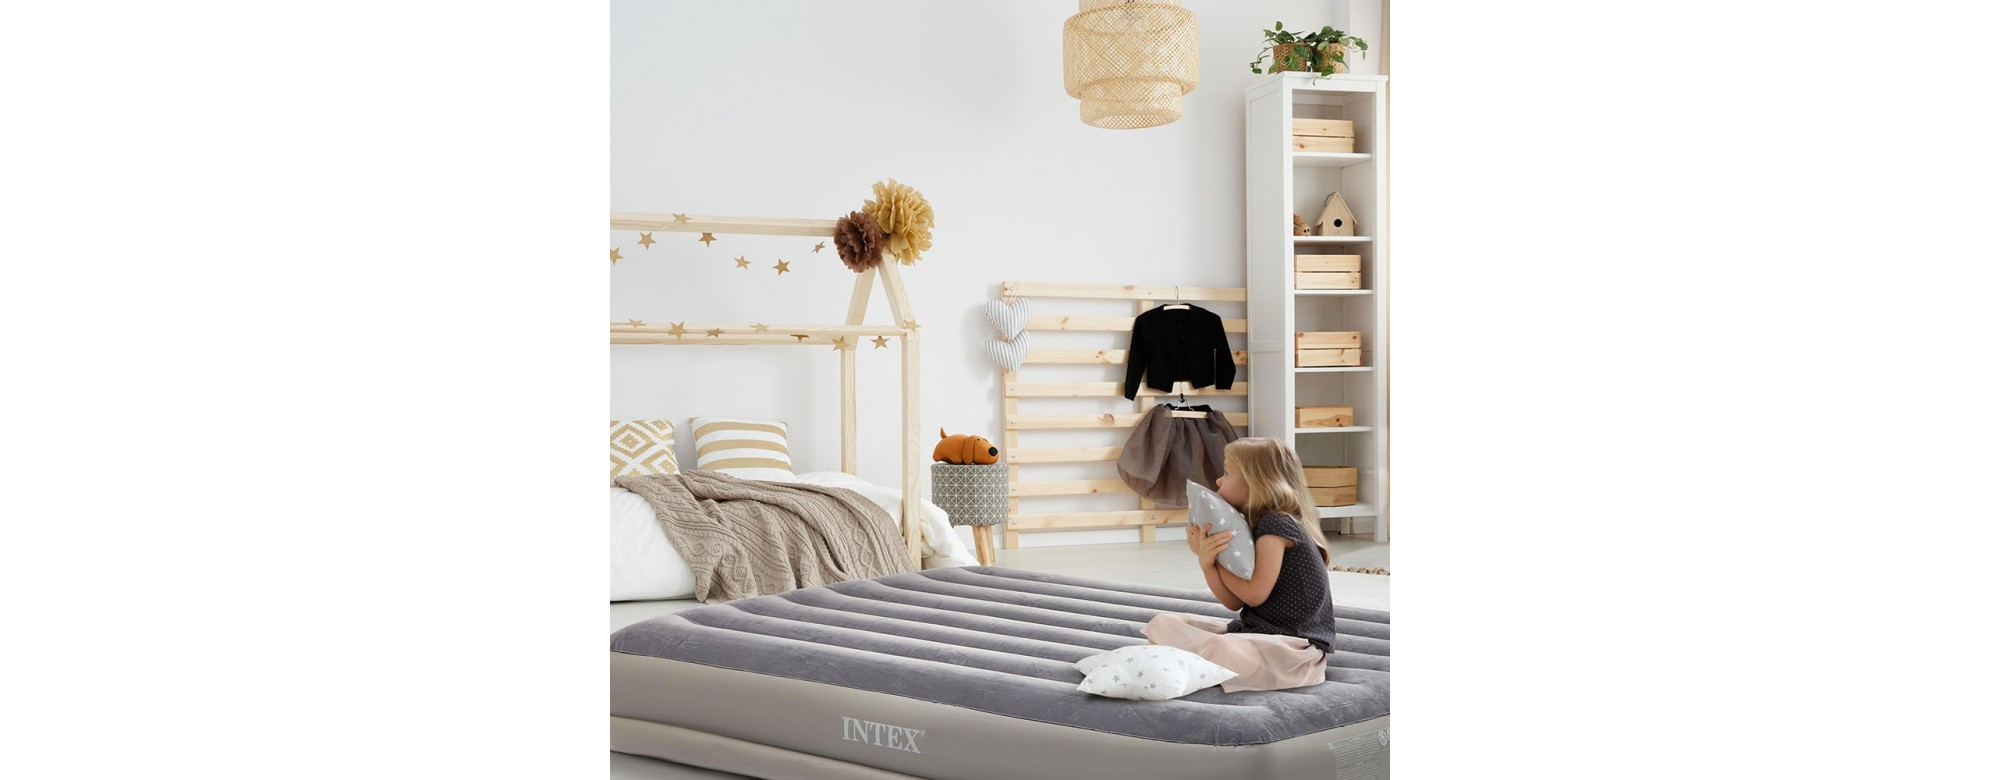 Matelas gonflables Intex : adaptées au grand air ou à la maison